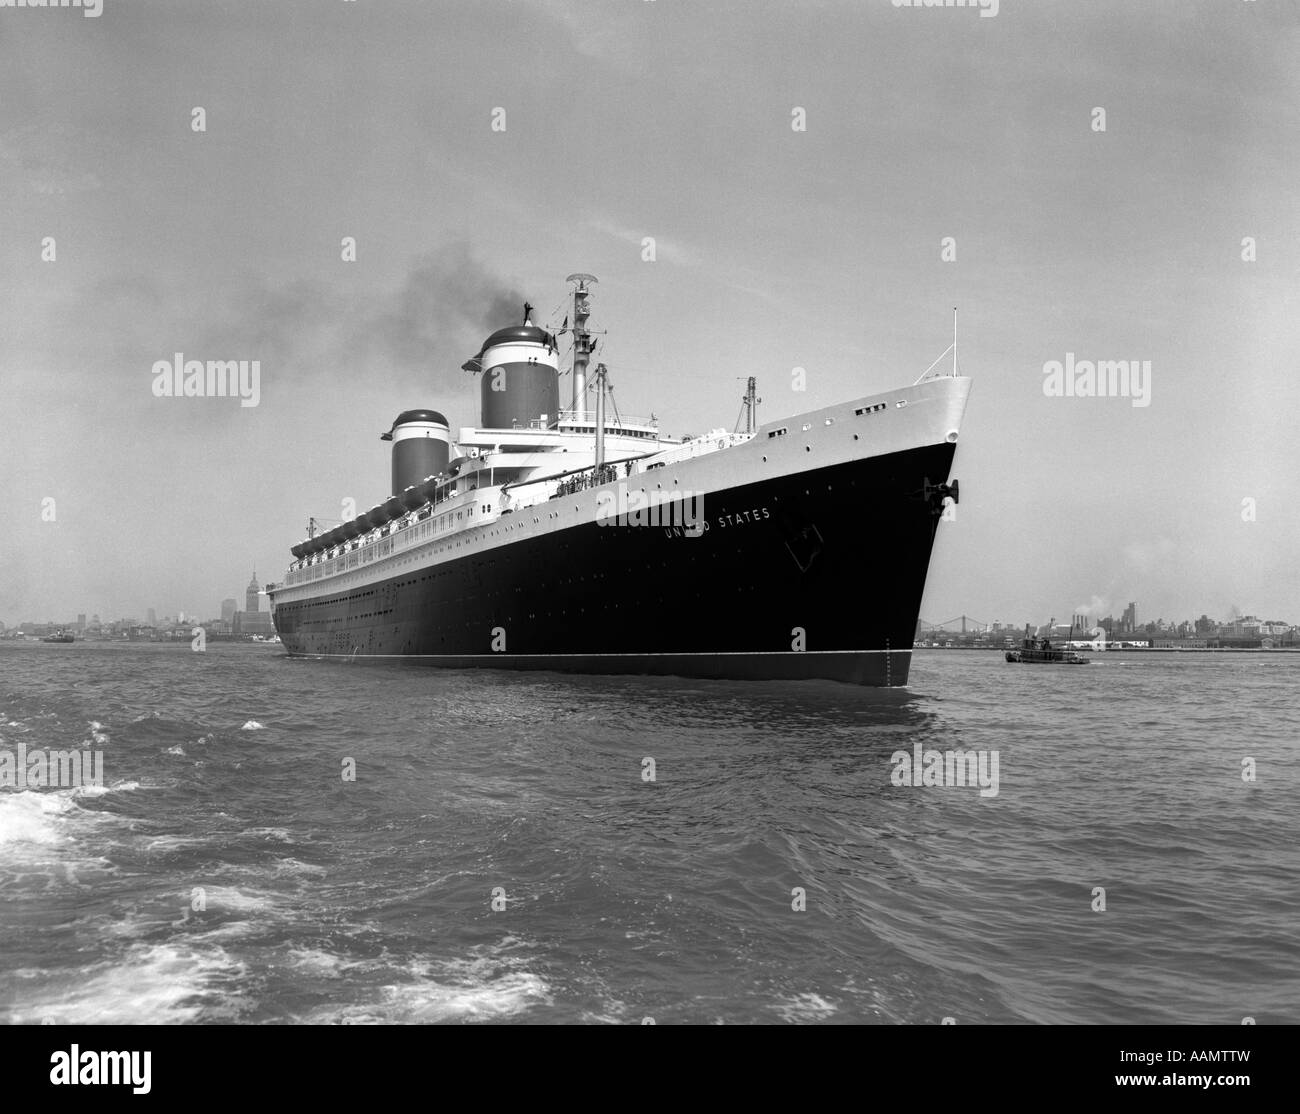 1950s SS UNITED STATES PASSENGER STEAMSHIP OCEAN LINER - Stock Image